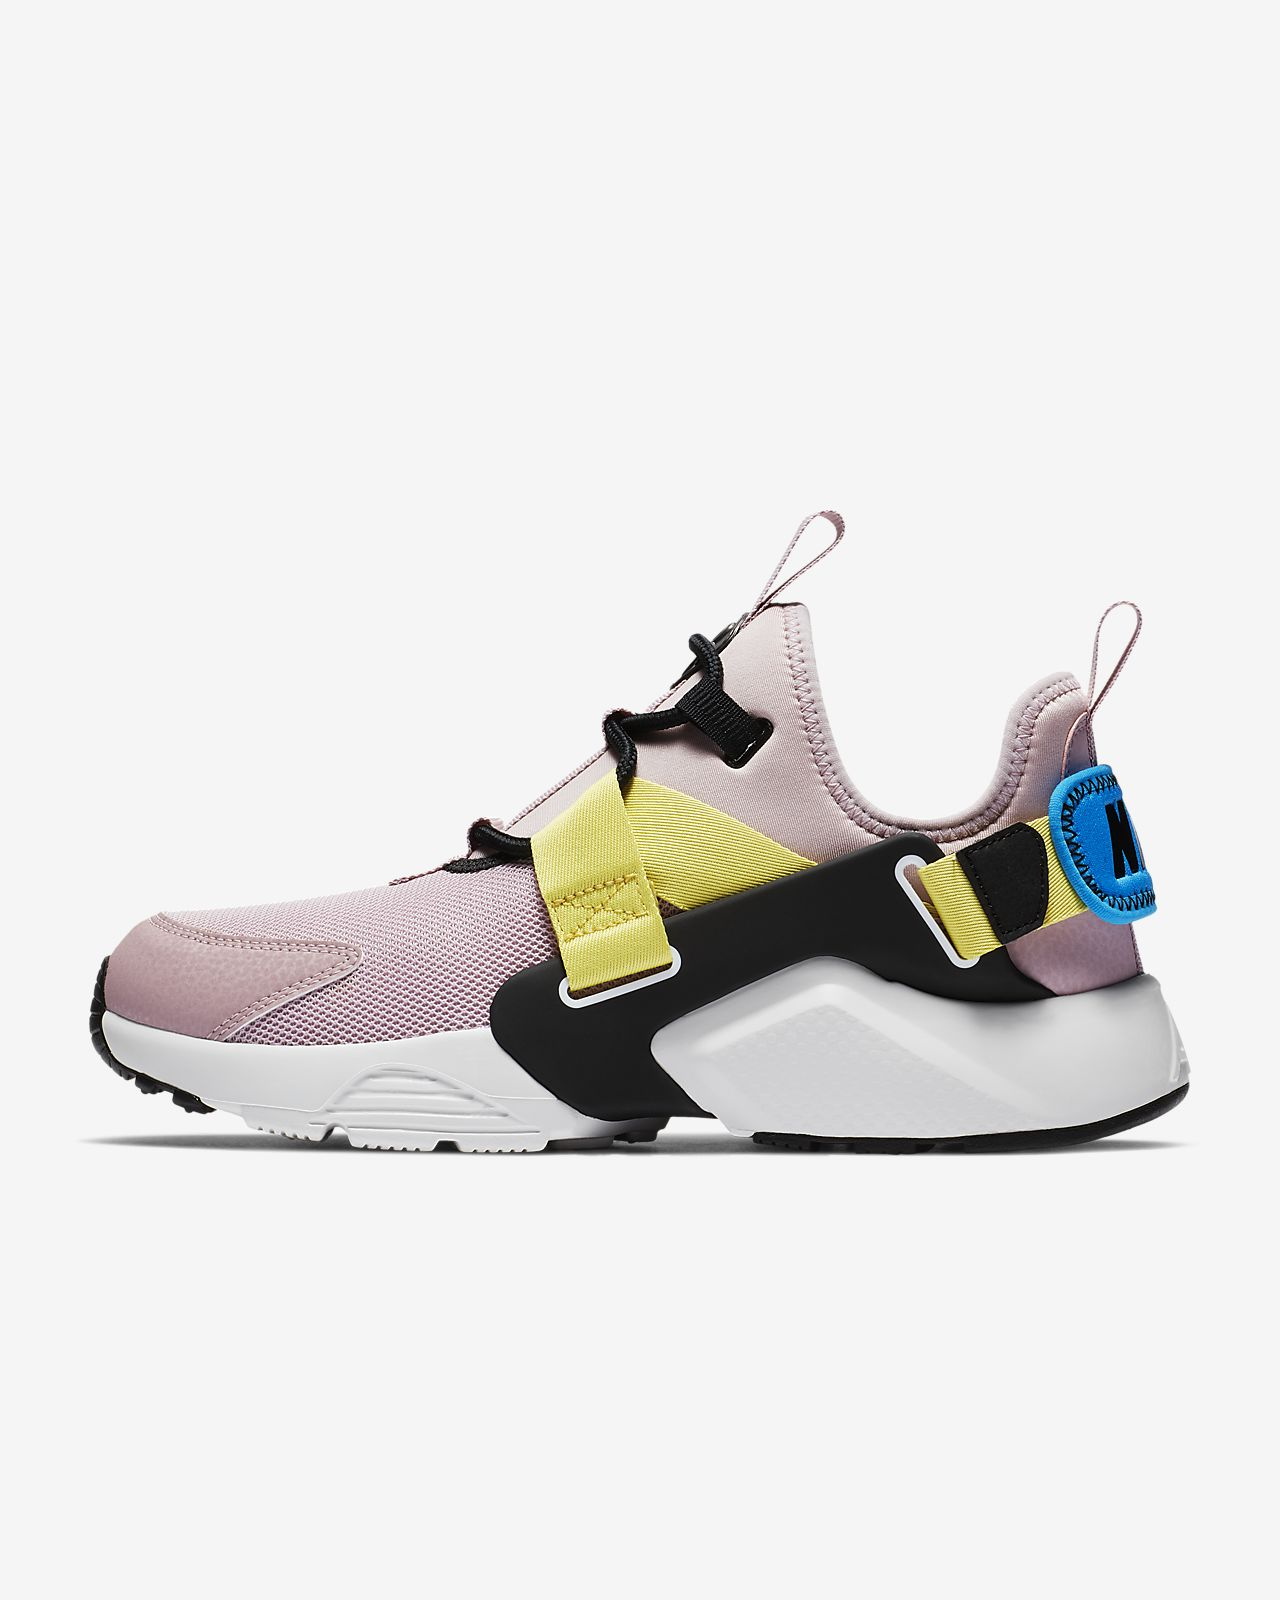 7a5a6218006 Nike Air Huarache City Low Women s Shoe. Nike.com